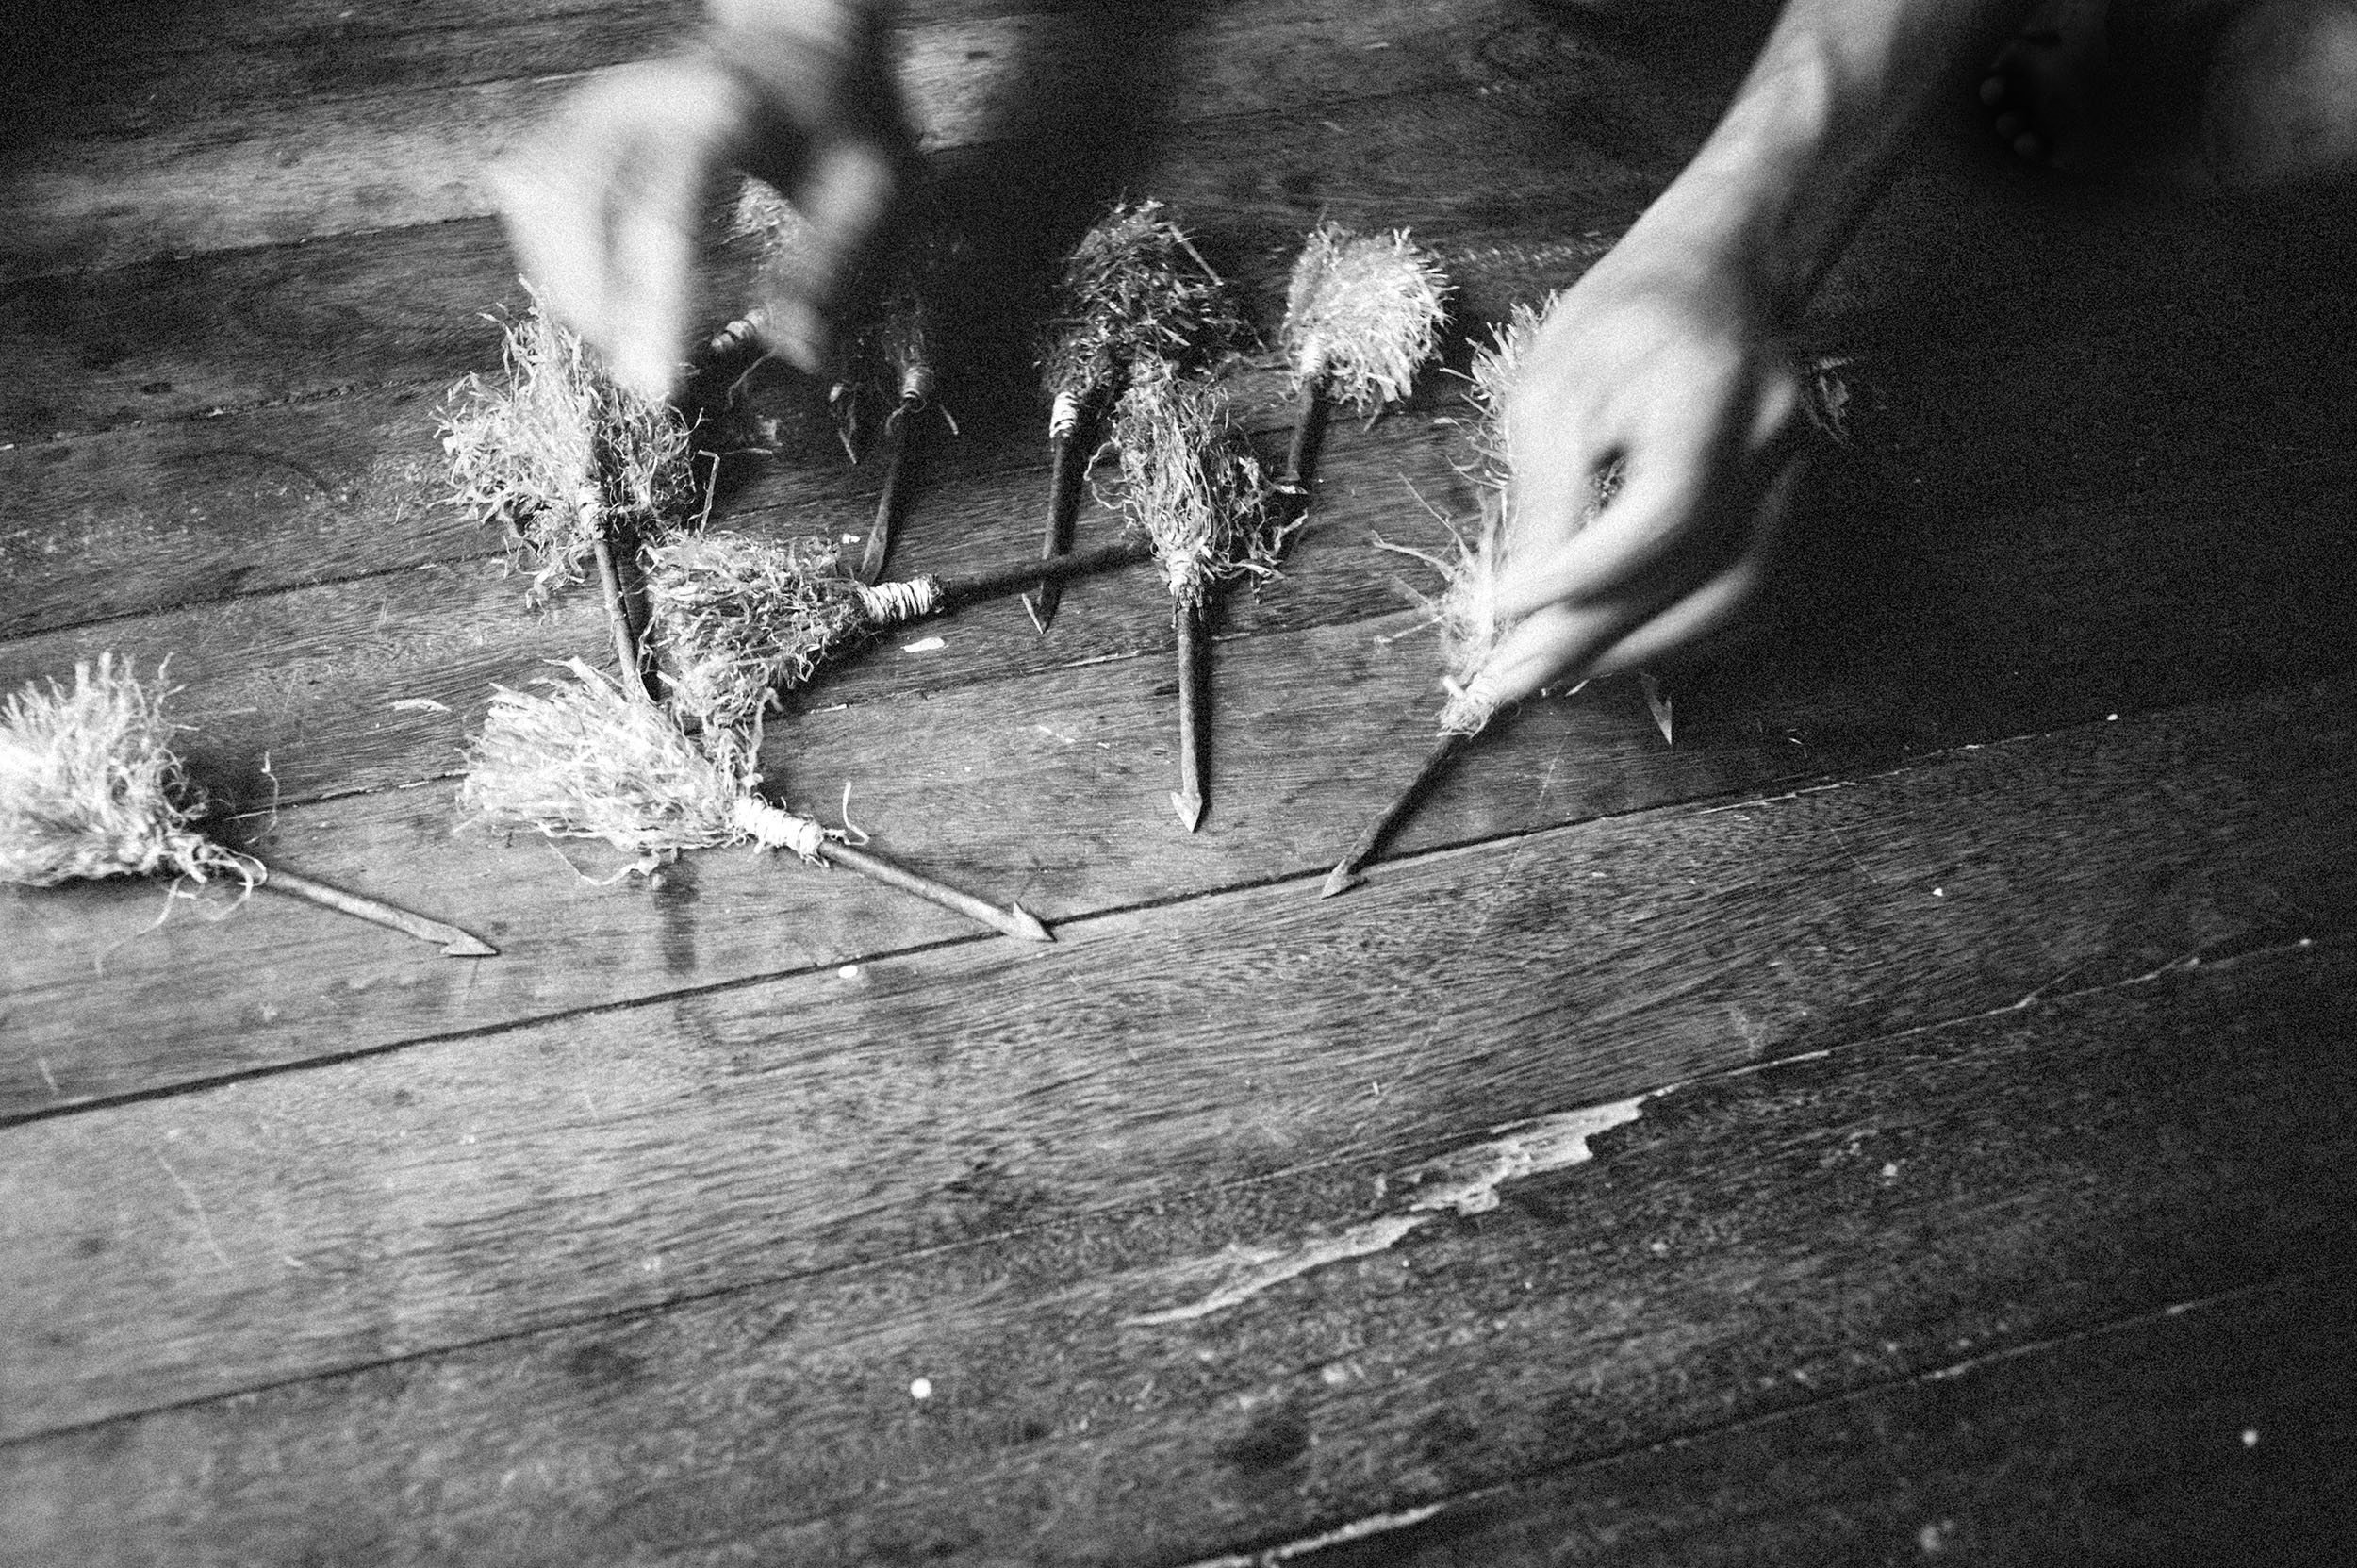 Jinglee - homemade projectiles. Made from sharpened nails.